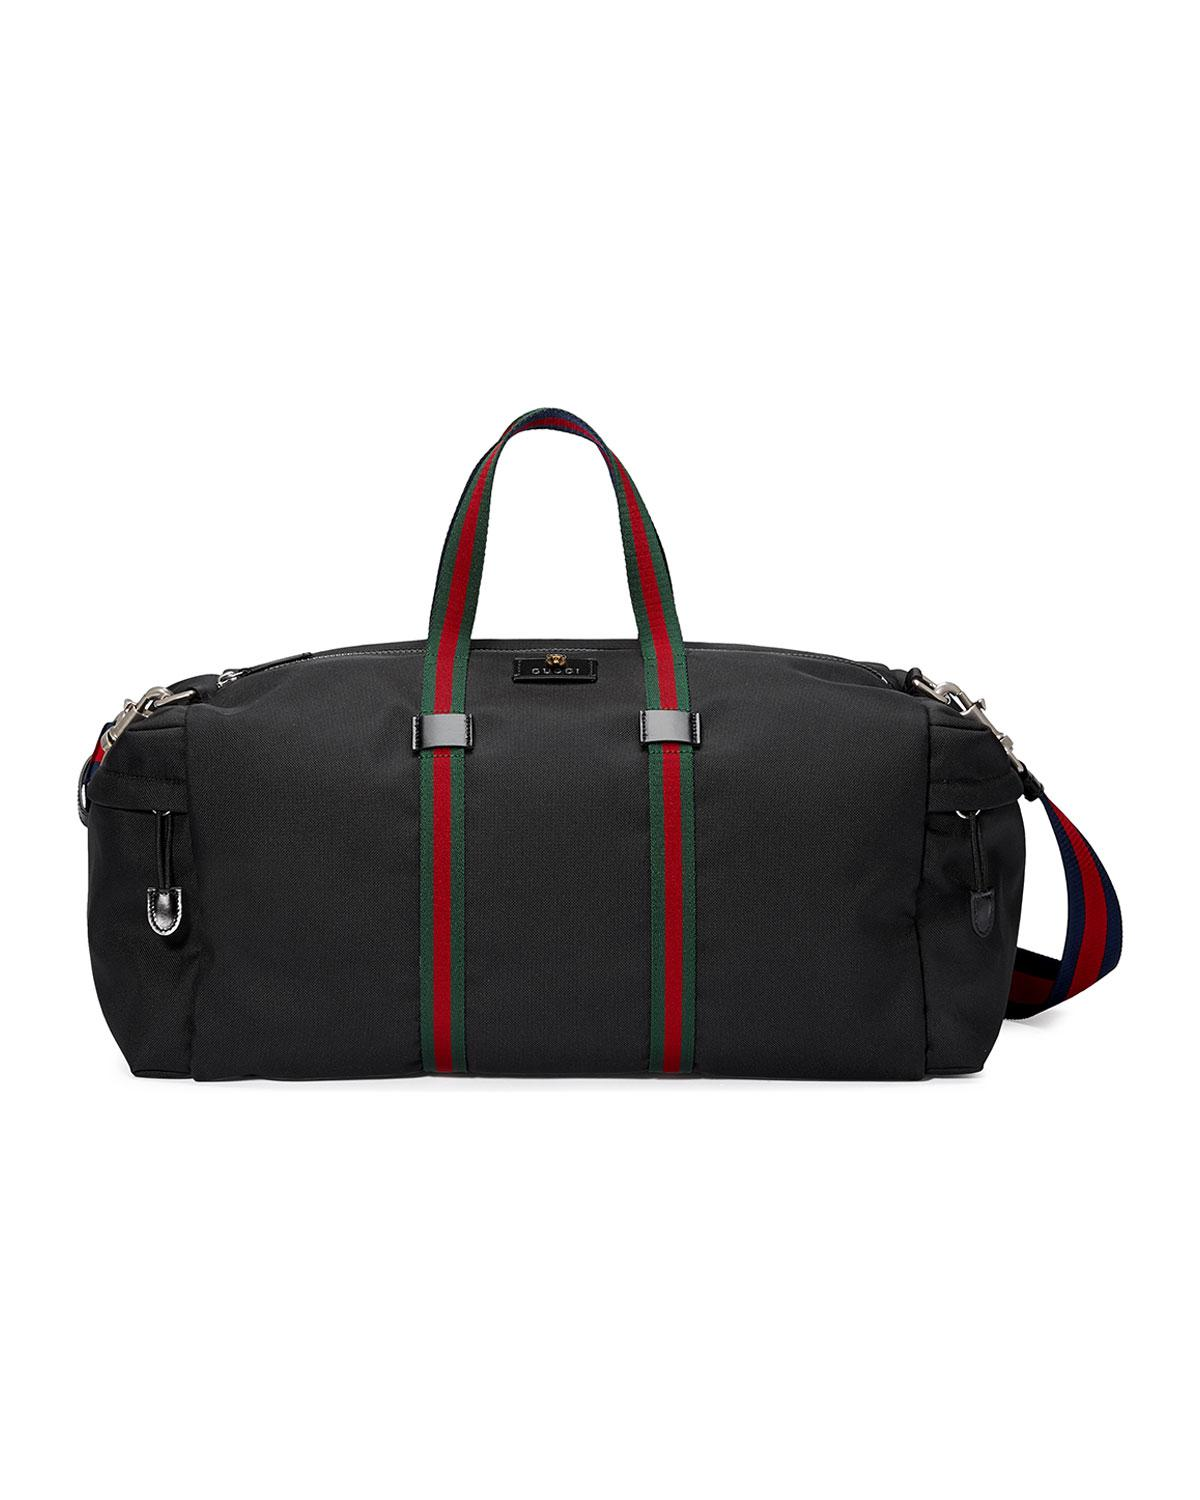 e7c7043461a7 Lyst - Gucci Technical Canvas Duffle Bag in Black for Men